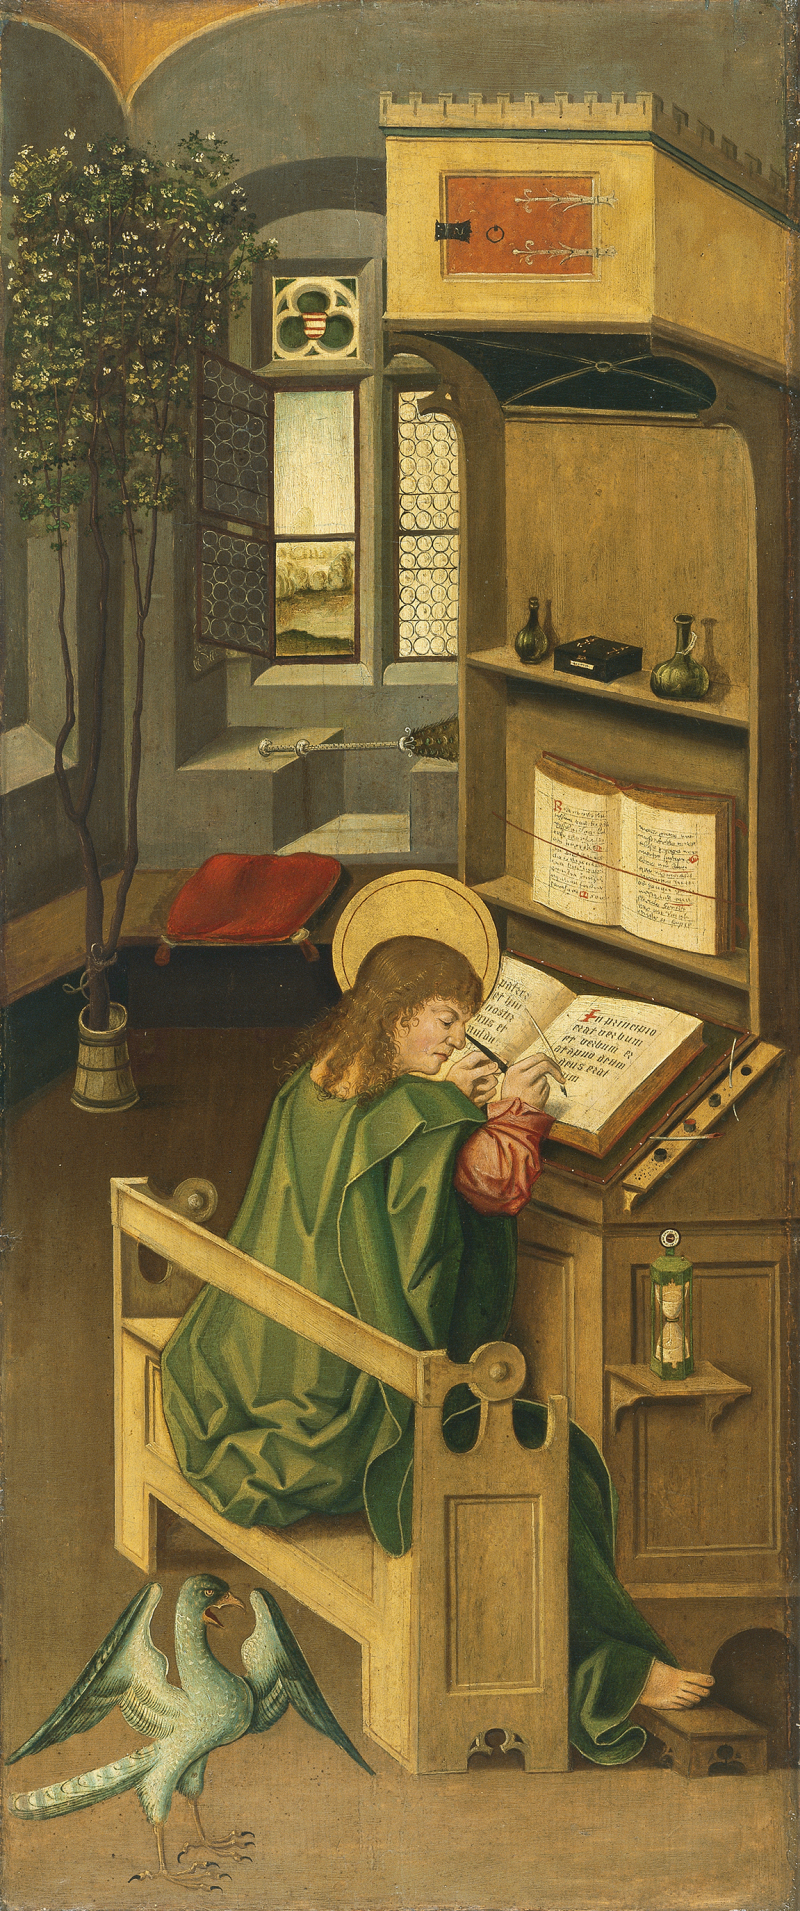 Saint Luke the Evangelist 1478  Oil on panel. 77 x 32.2 cm Museo Thyssen-Bornemisza  Madrid Inv. no. 233 (1928.15) gabriel malesskircher